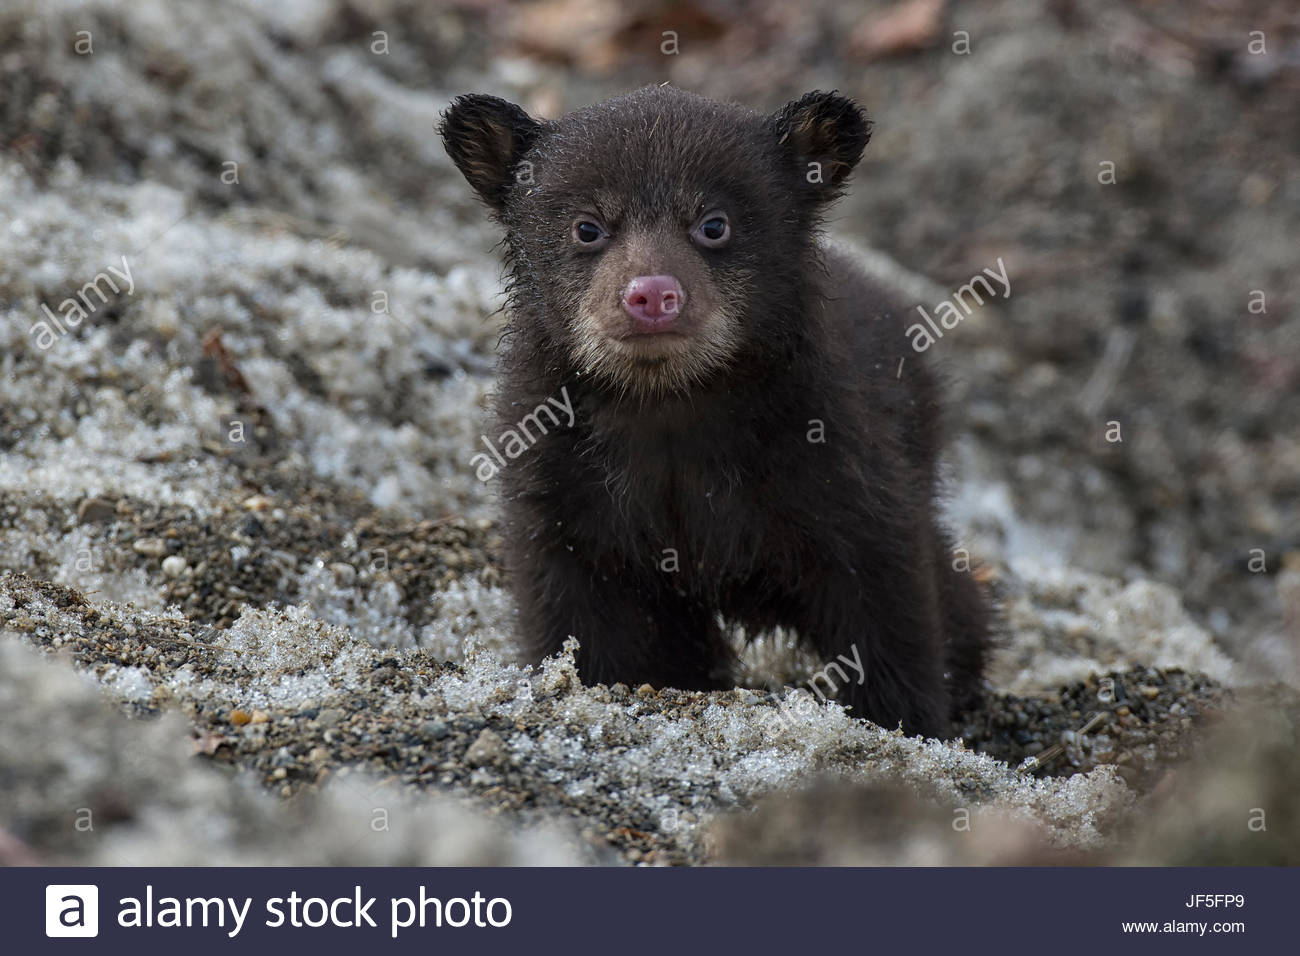 Portrait of a weeks-old black bear cub, out of its den for the first time. - Stock Image